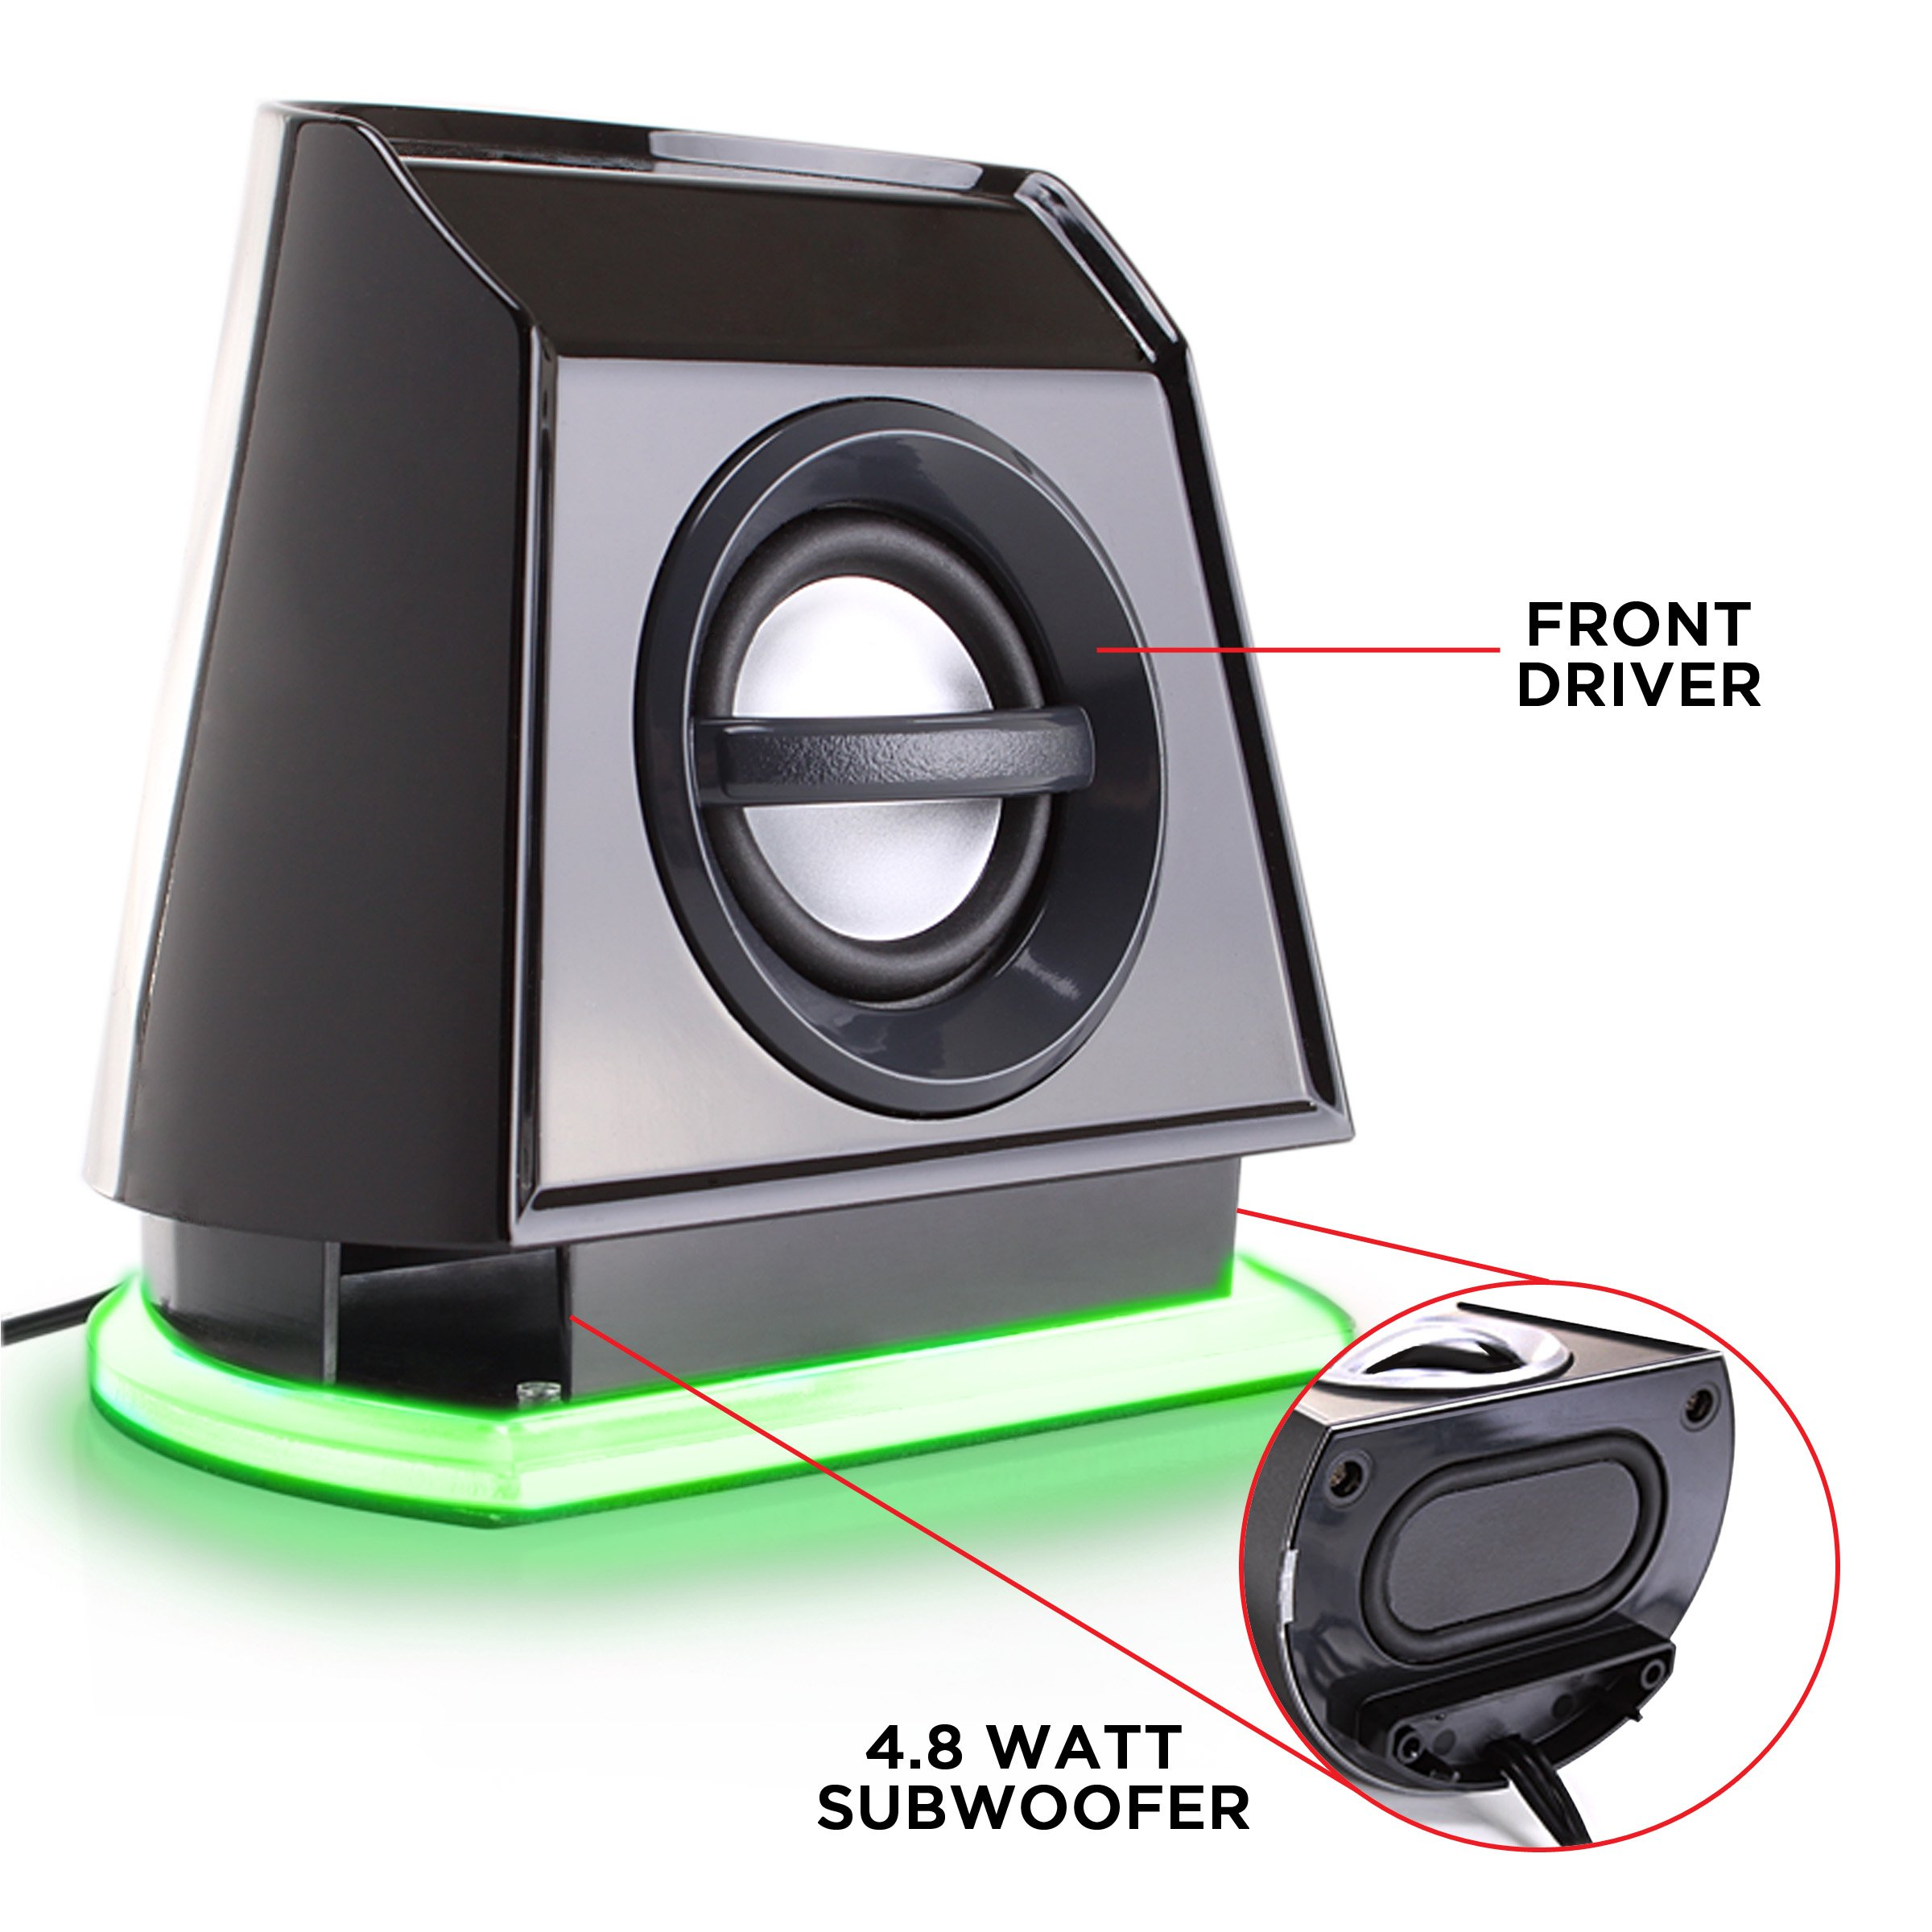 GOgroove 2MX LED Computer Speakers with Powered Subwoofer, Green Glowing Lights and Stereo Sound - Wired 3.5mm Audio Input Connection, USB Powered for PC, Desktop and Laptop Computers by GOgroove (Image #4)